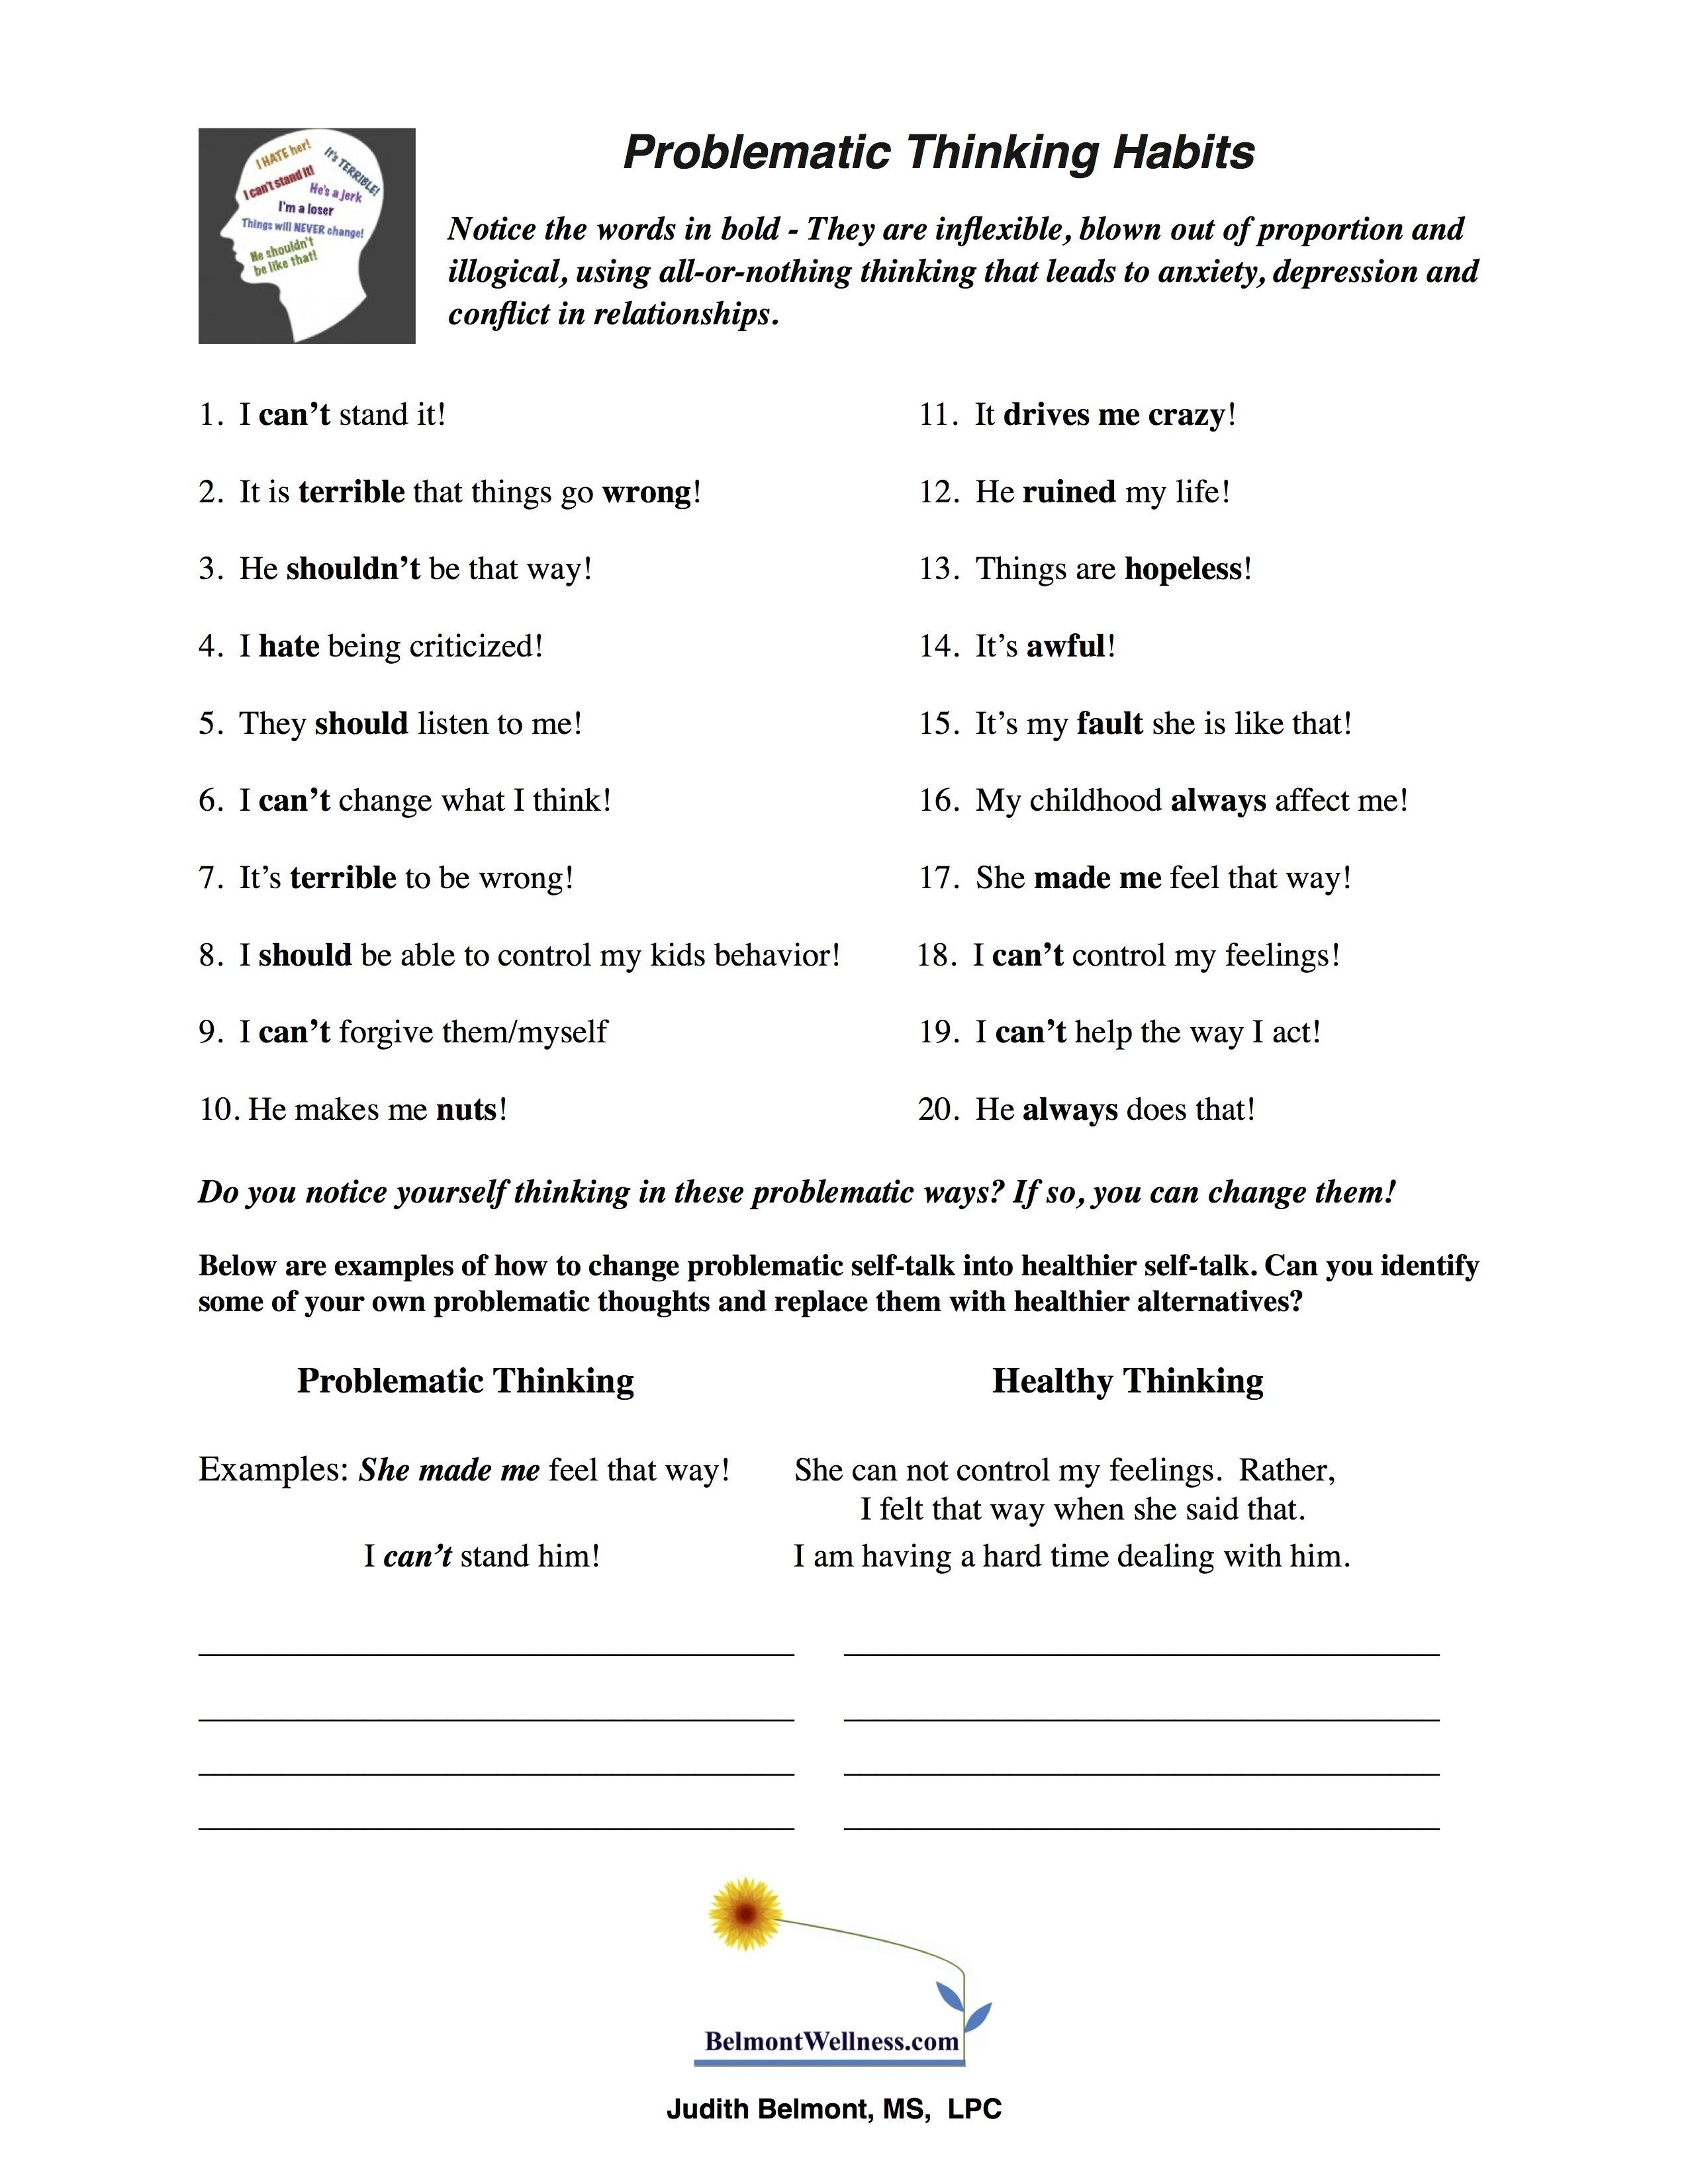 Psychoeducational Handouts Quizzes And Group Activities  Judy Intended For Youth Group Worksheets